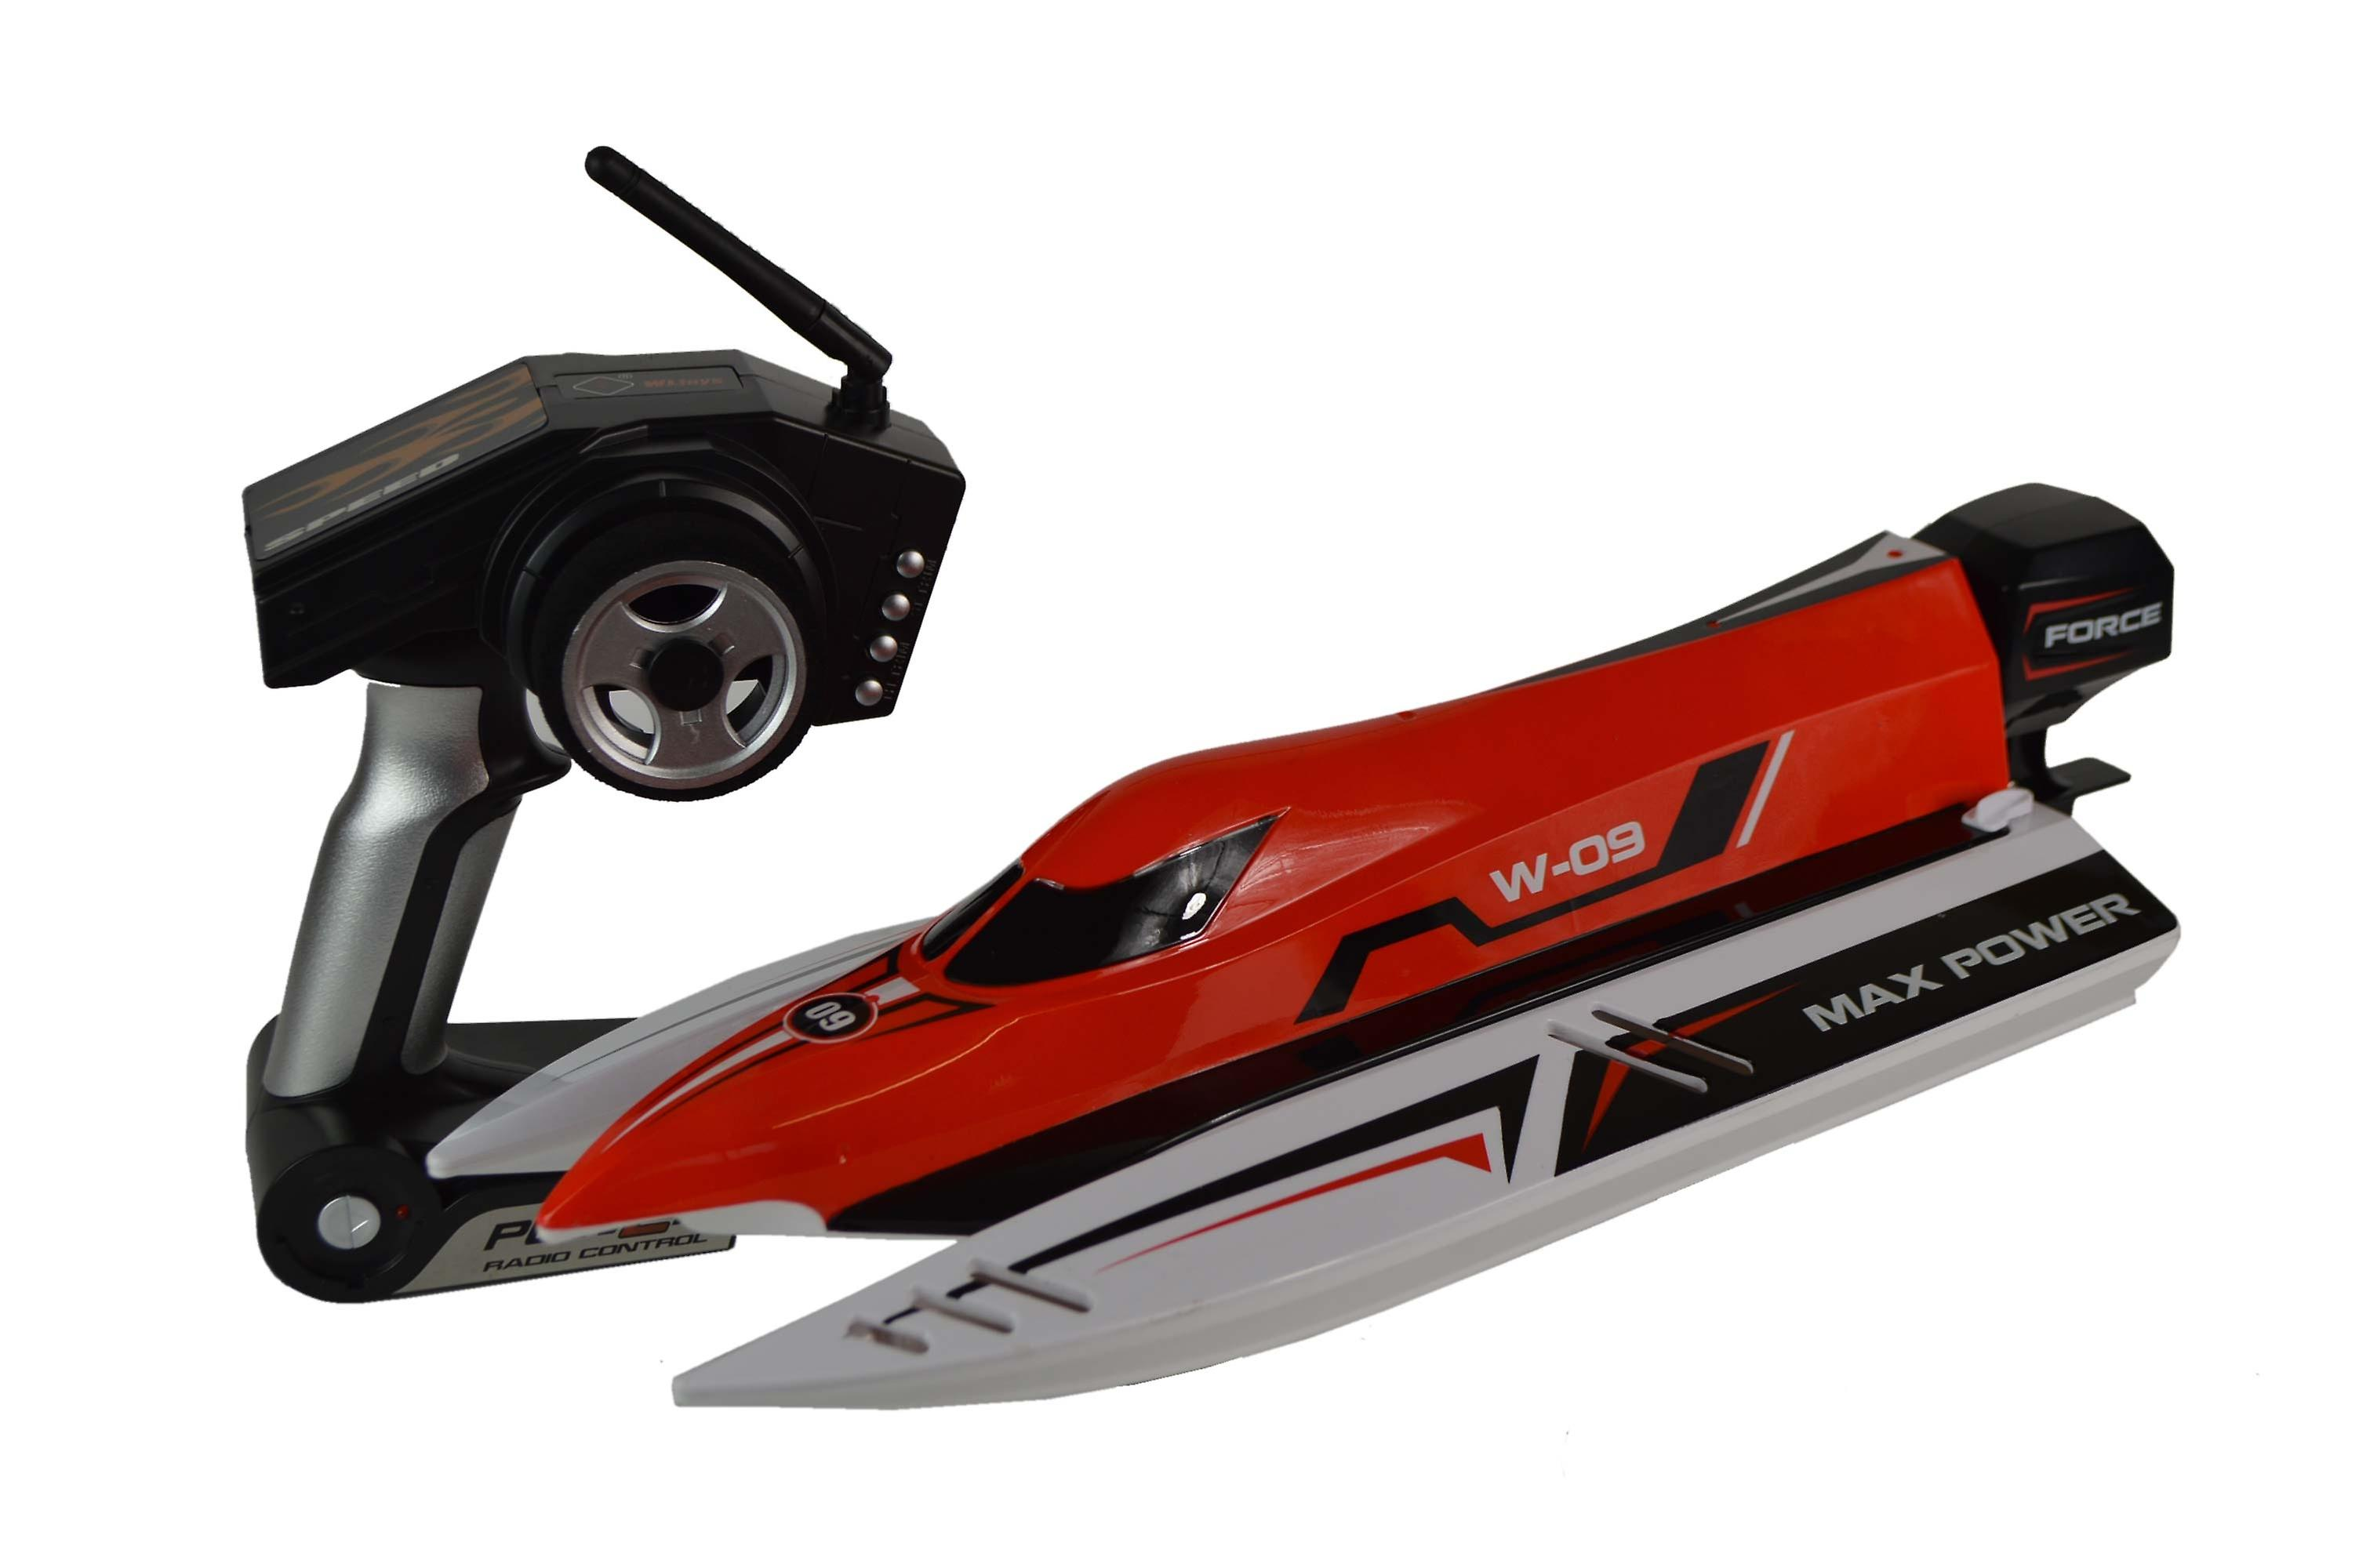 F1 Super Speed 45km/h Brushless RC Boat